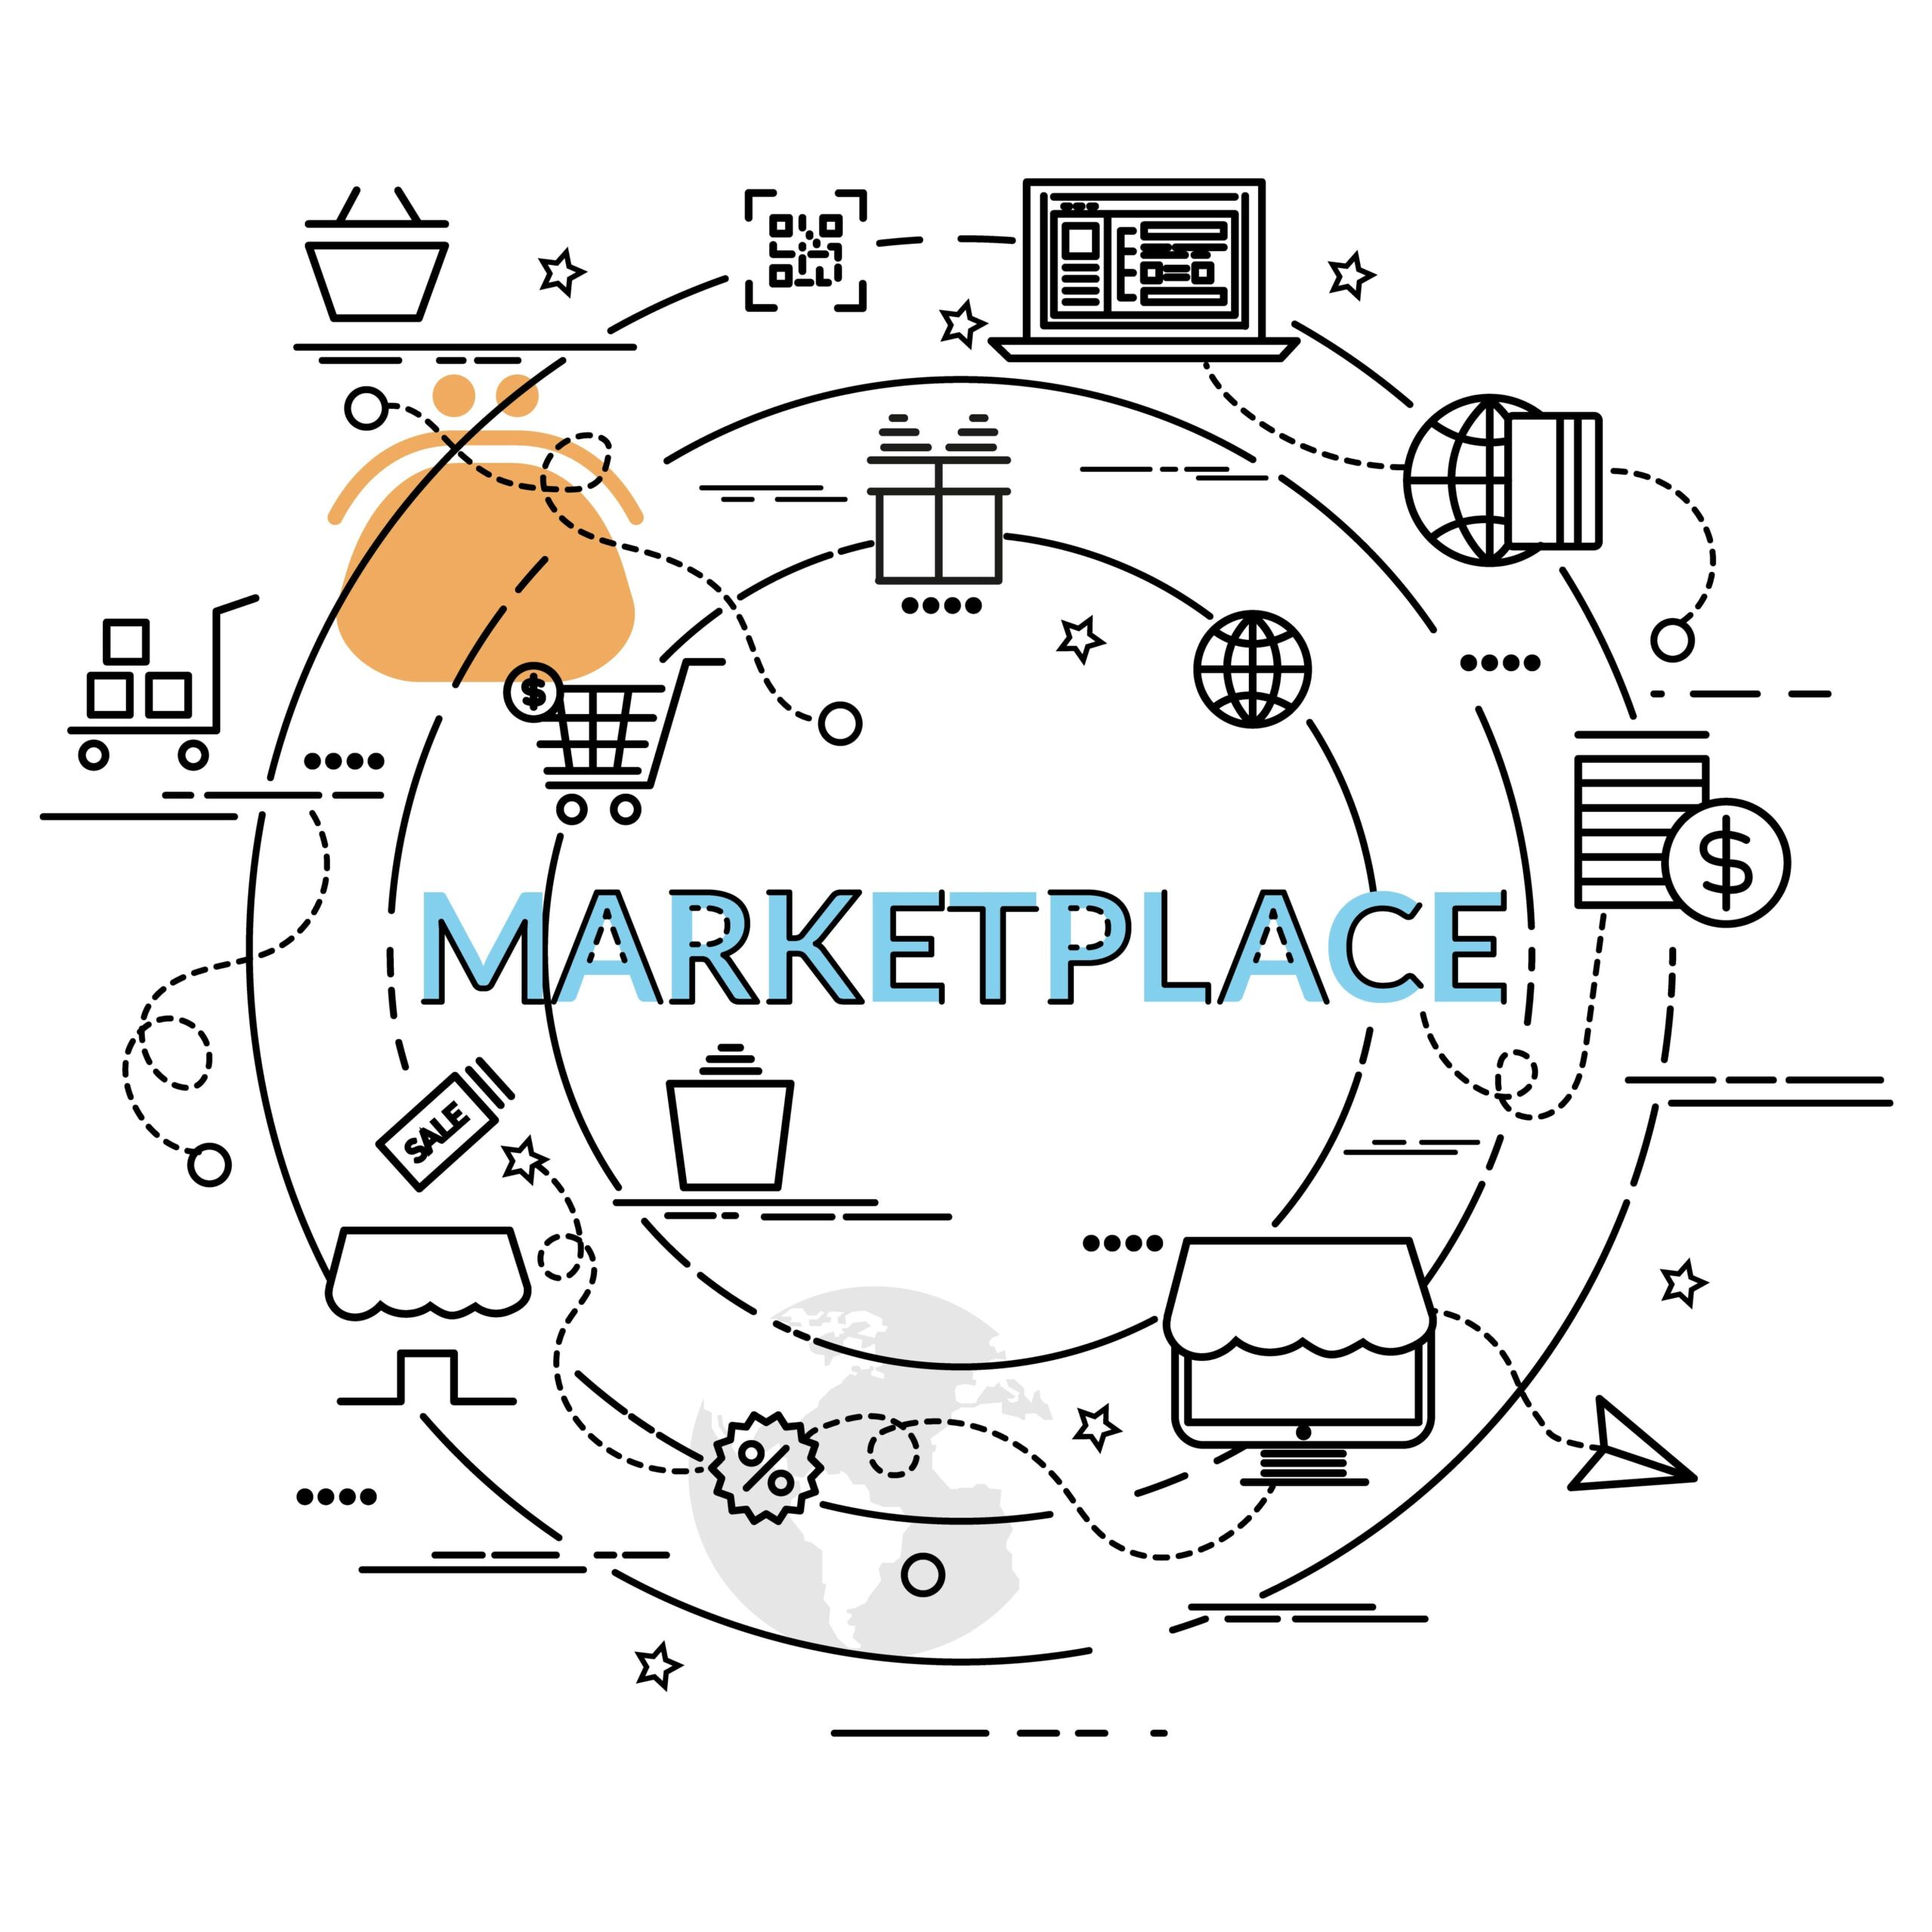 How to Deal with the Sentiment of the Marketplace